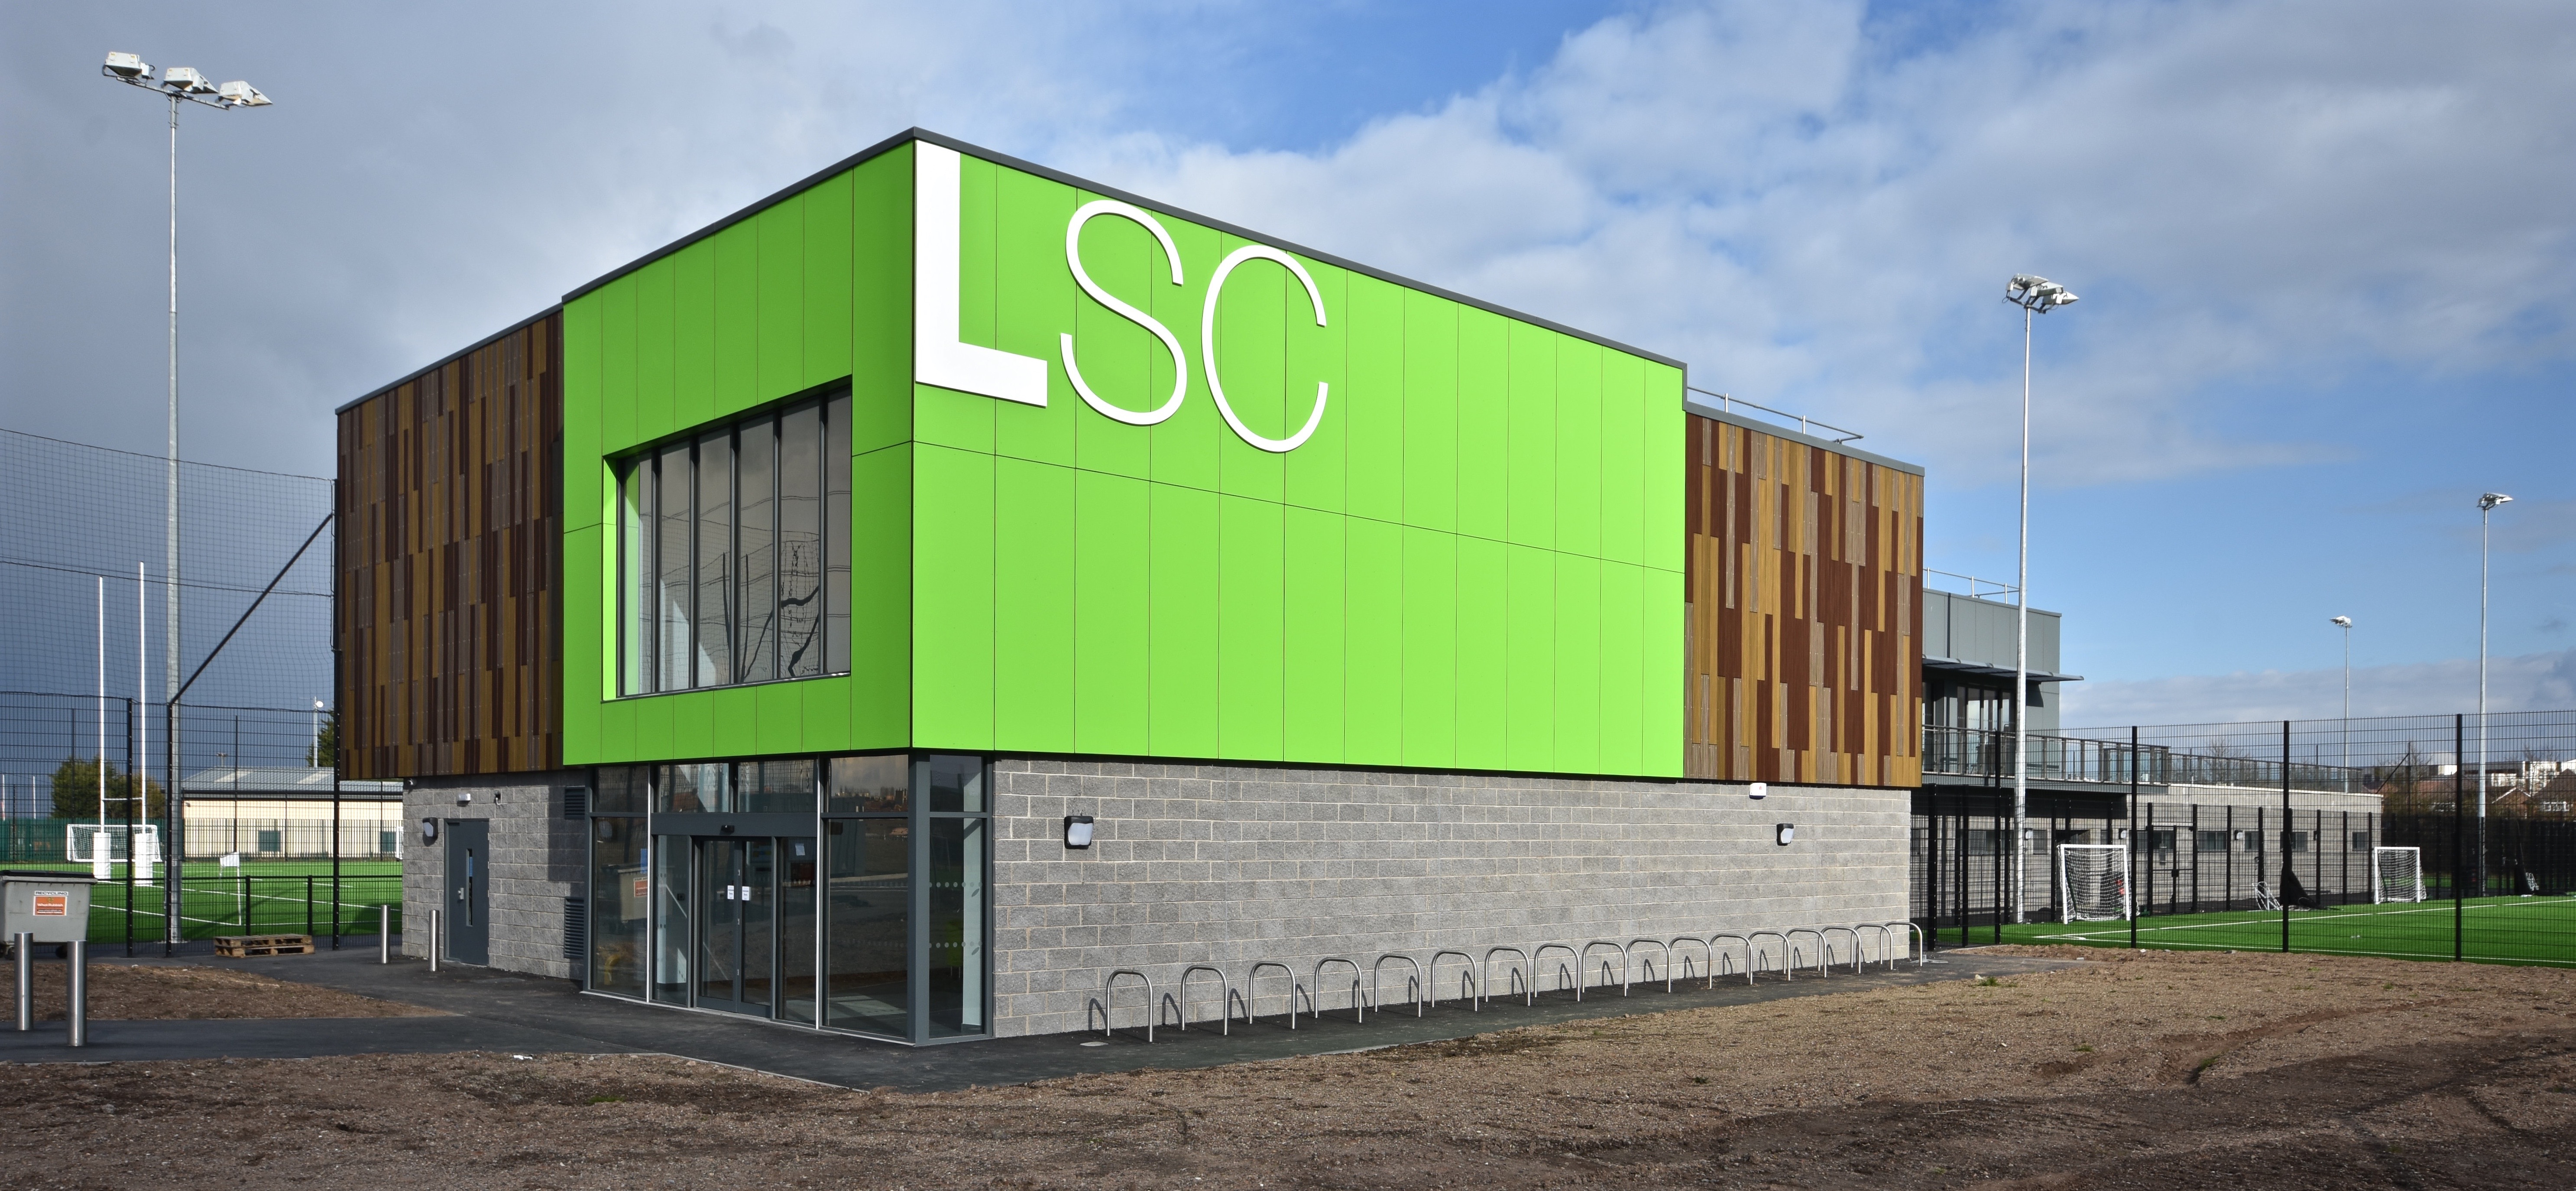 Lockleaze Sports Centre open for business!